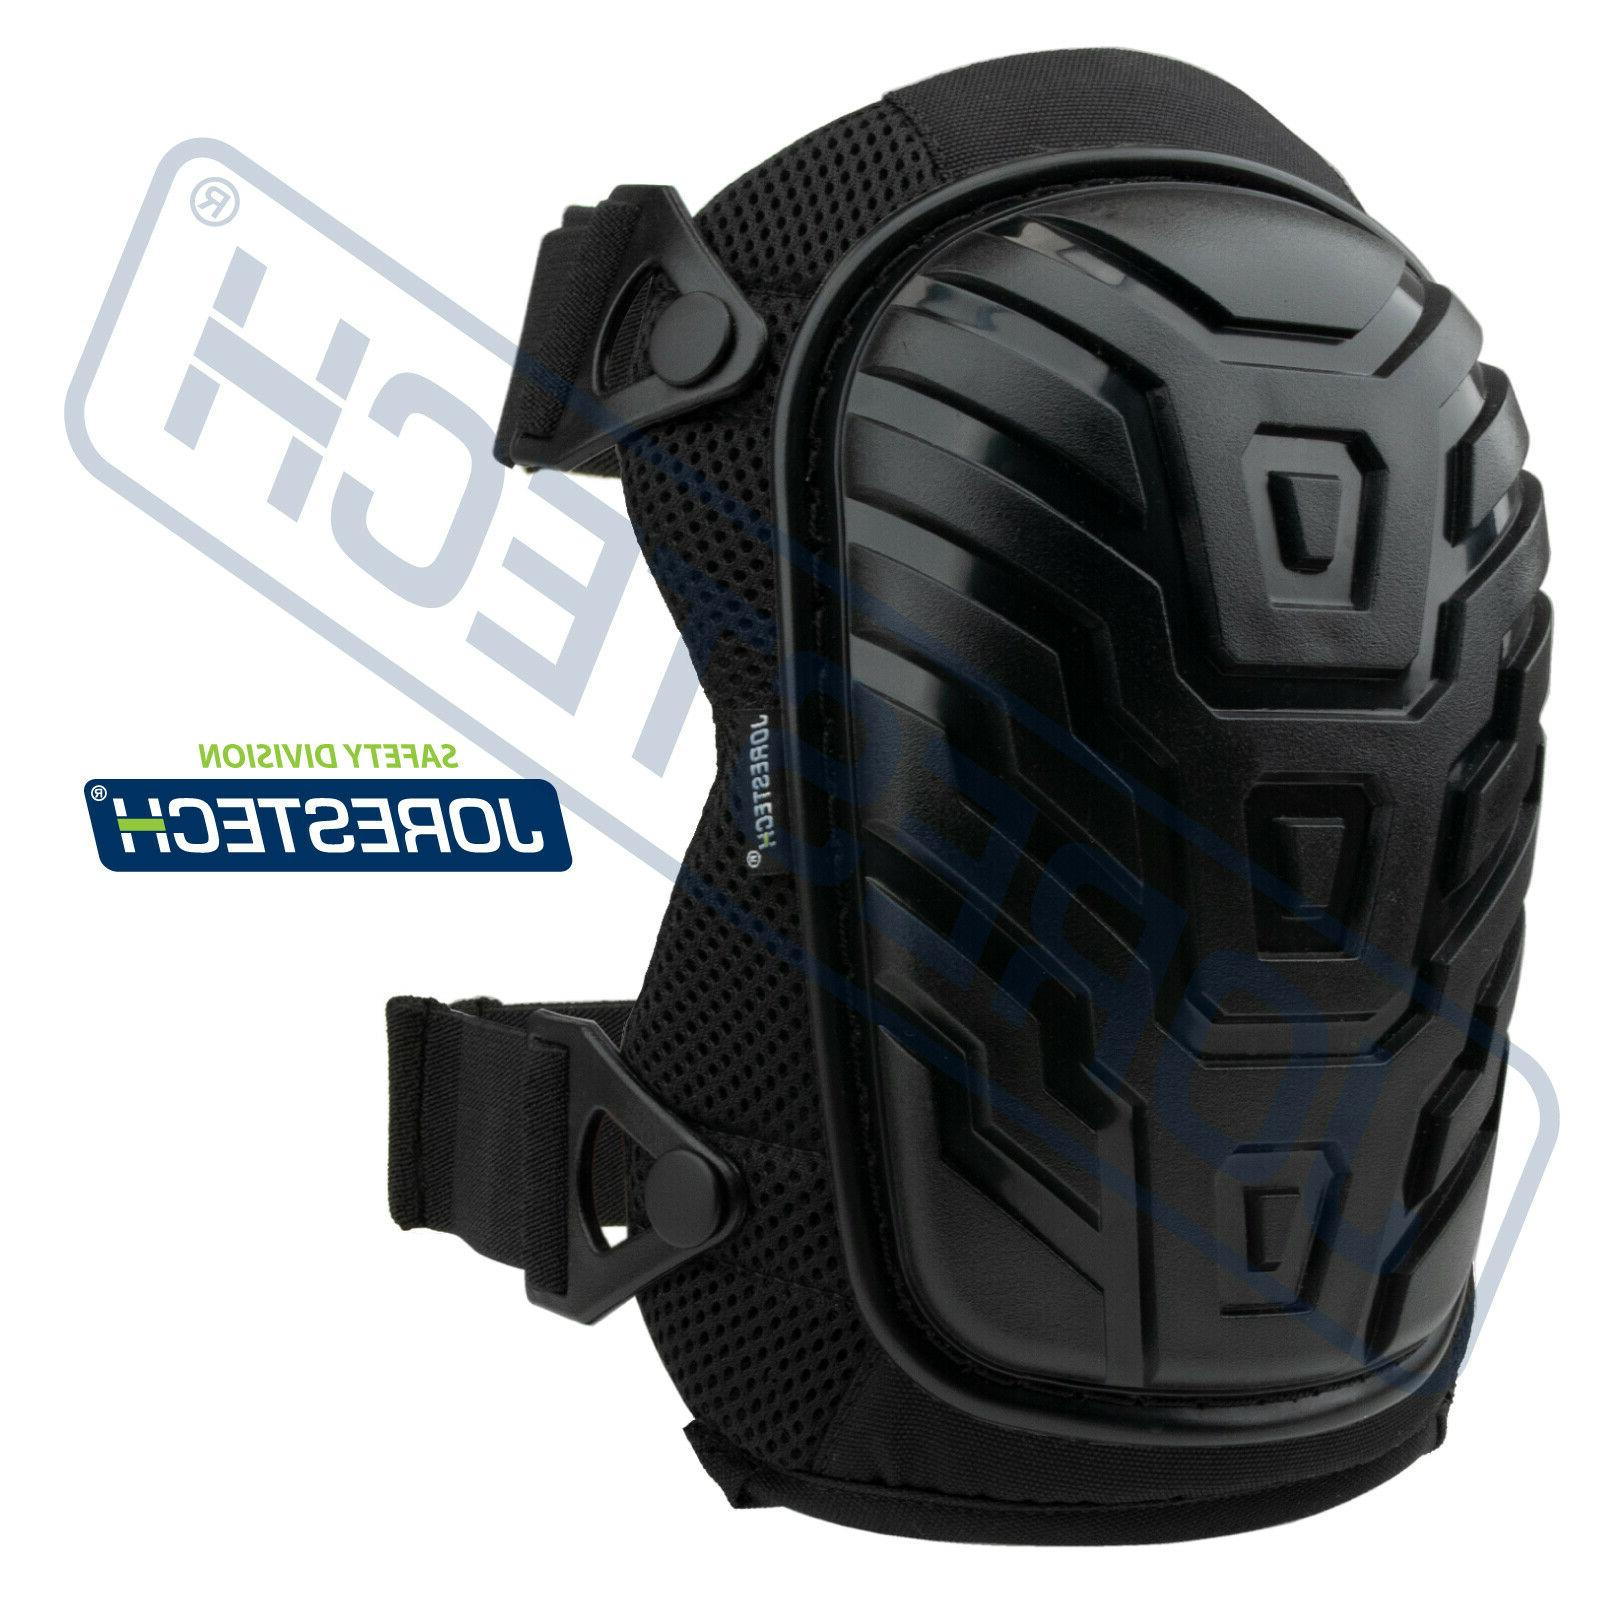 Construction Knee Pads Safety Comfort